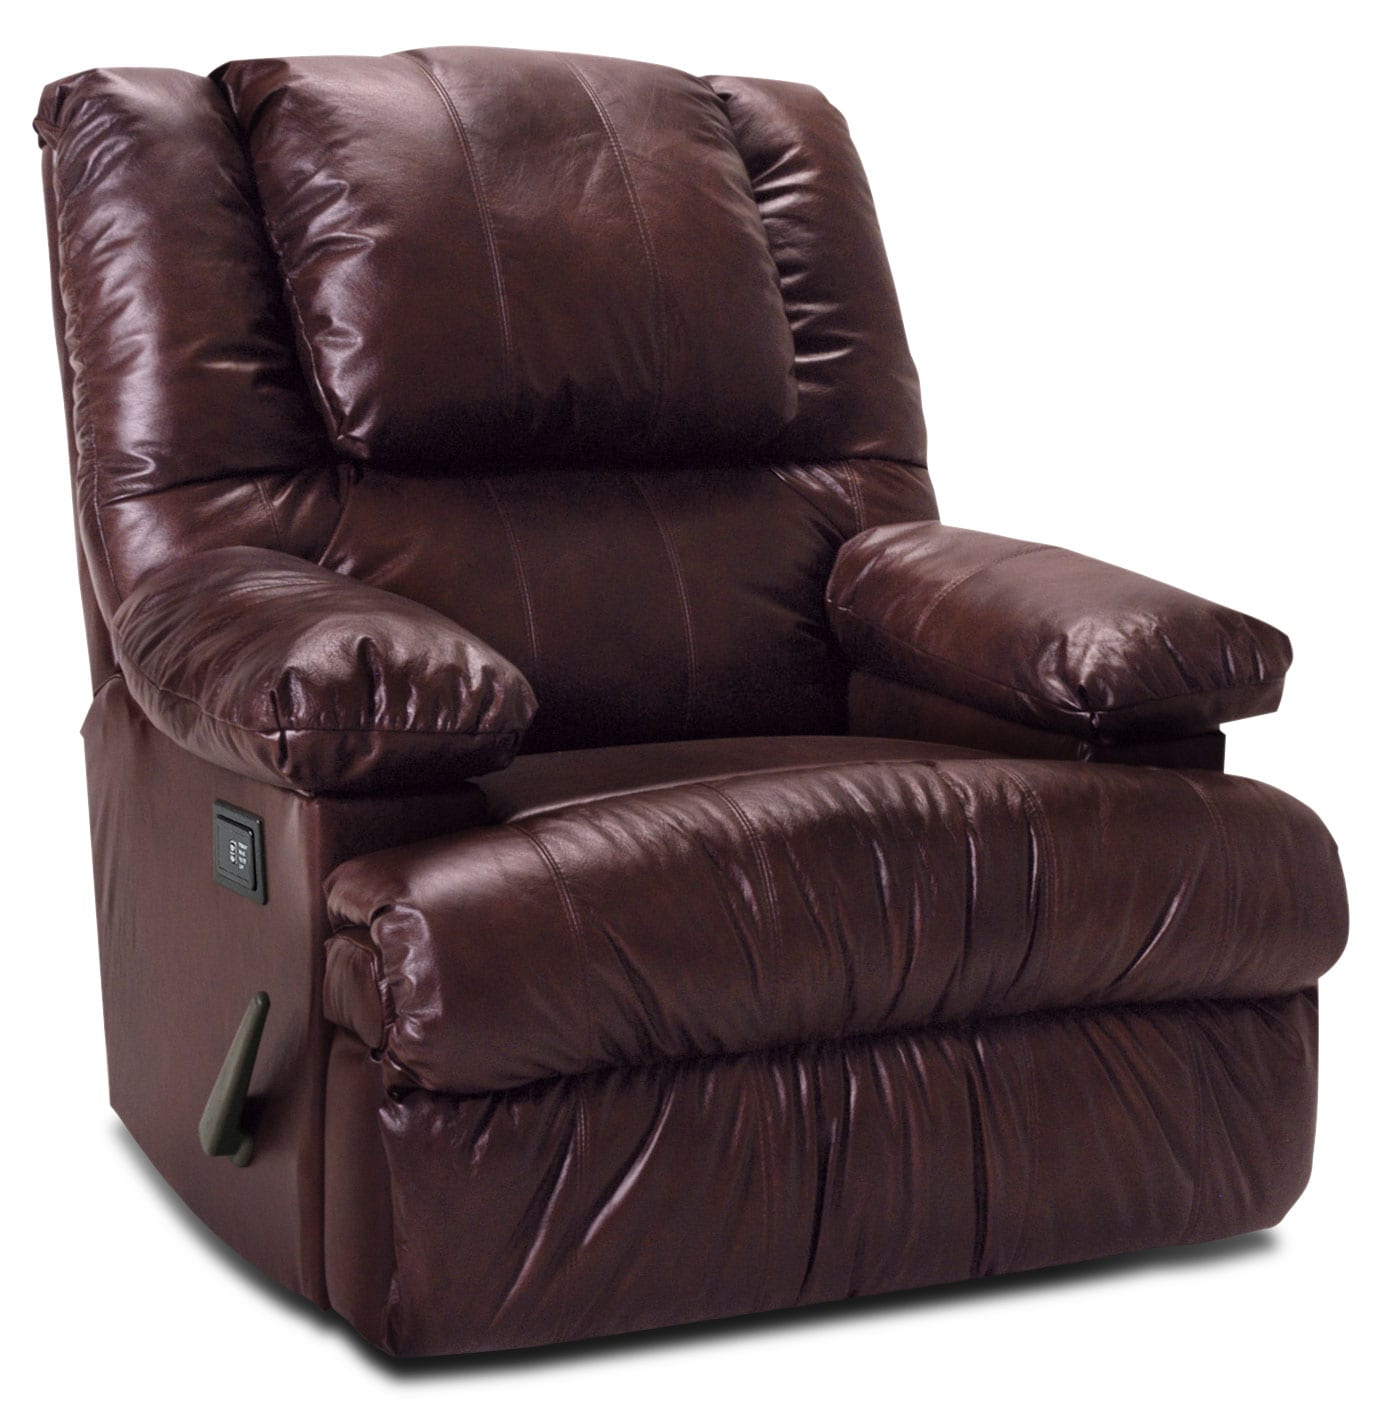 Living Room Furniture - Designed2B Recliner 5598 Genuine Leather Massage Recliner with Storage Arms - Burgundy